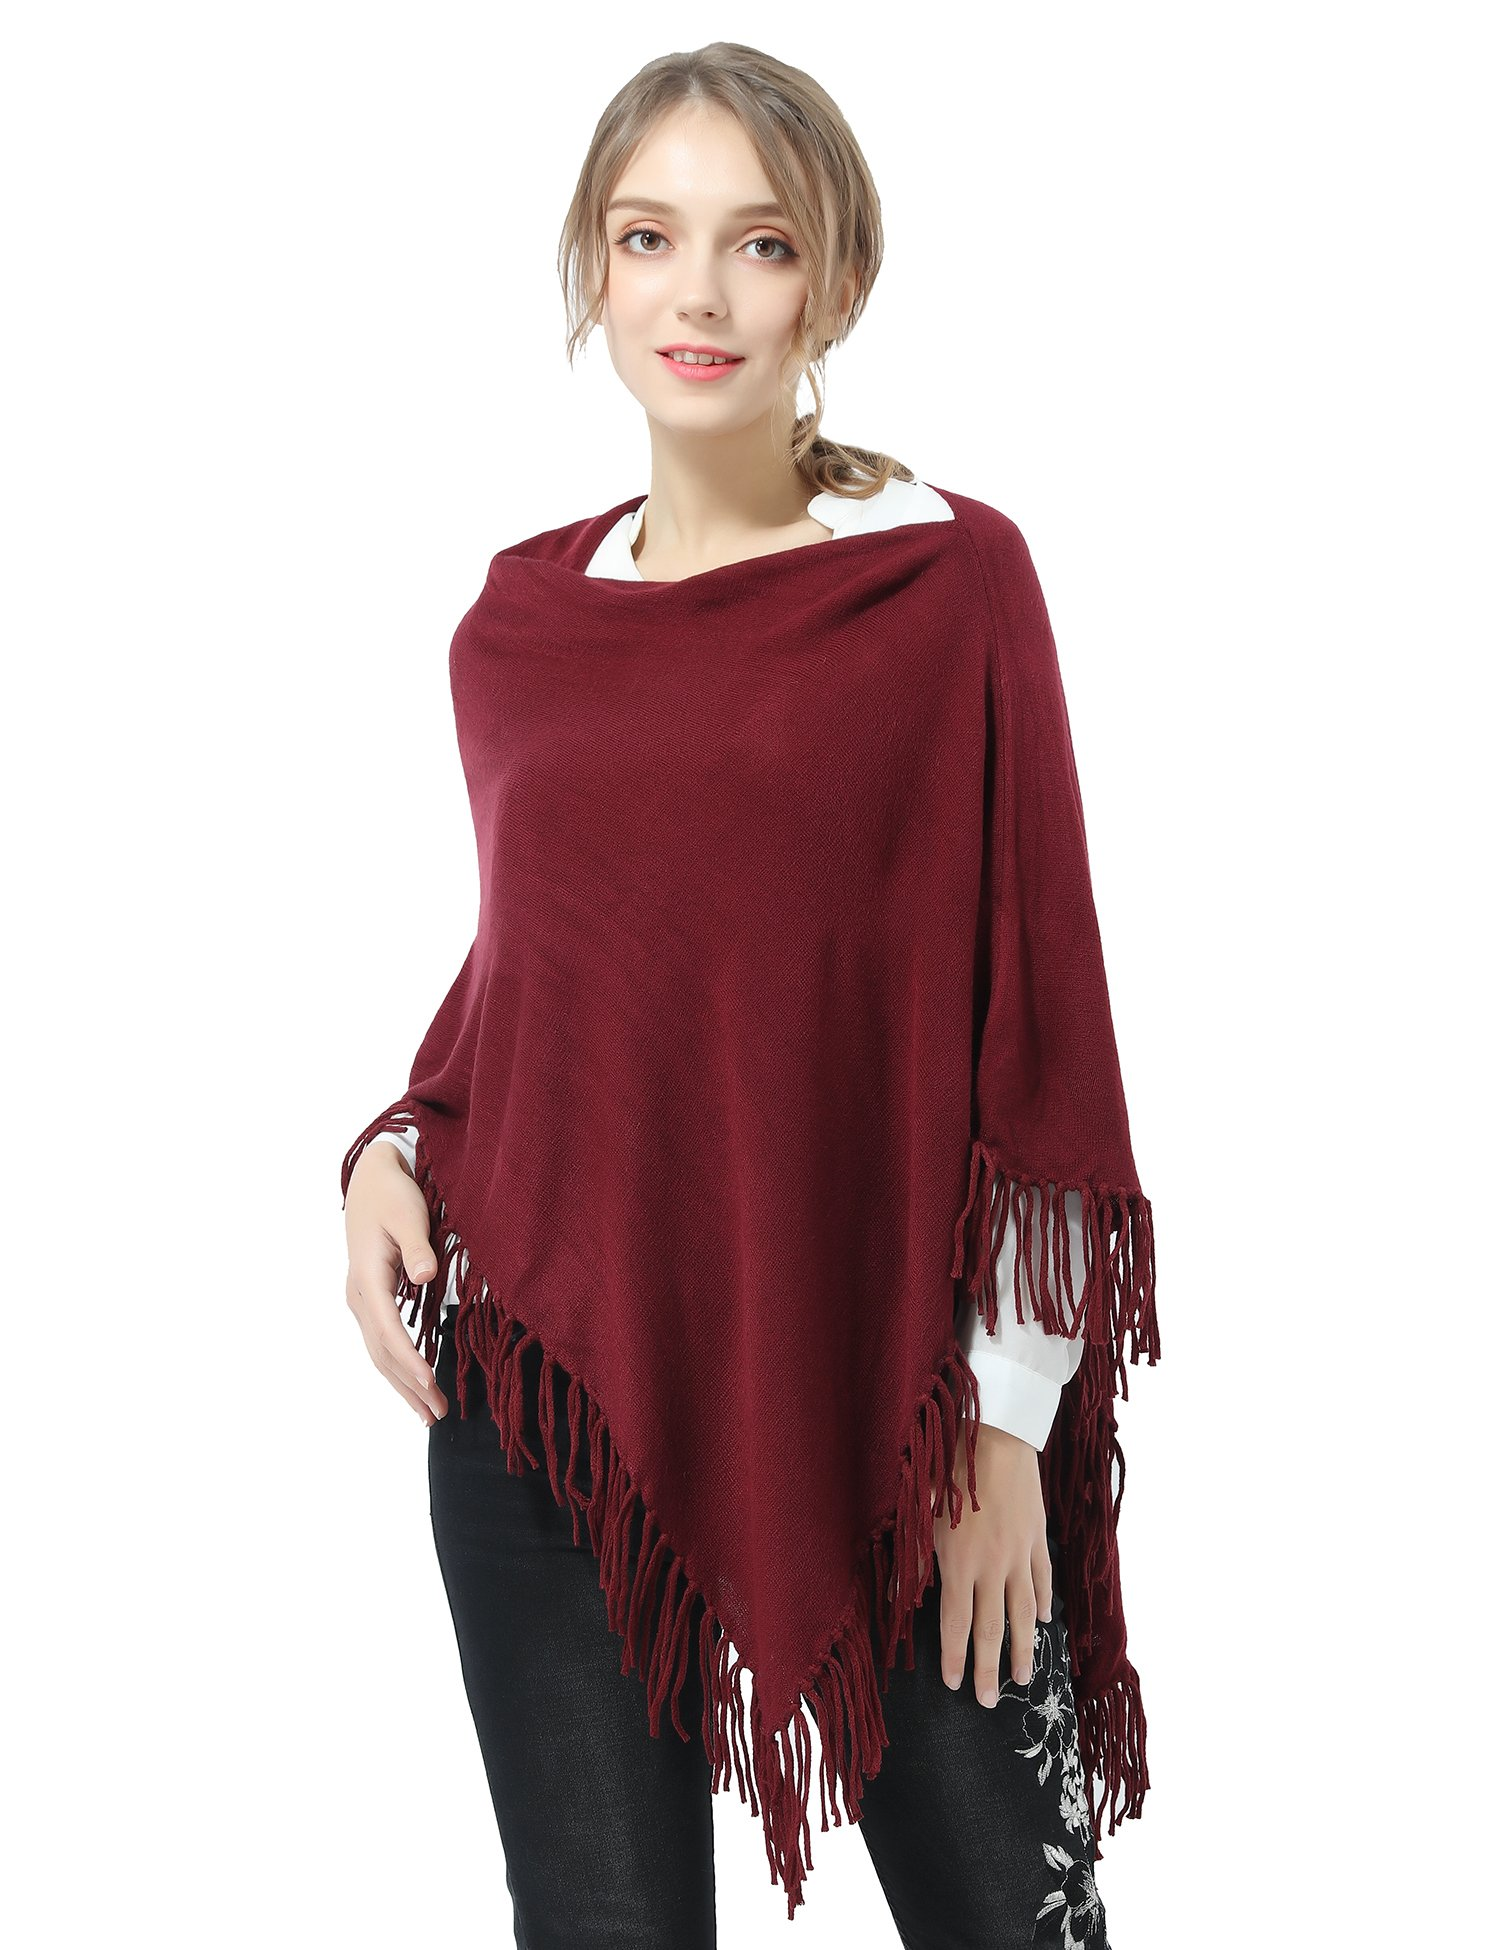 Joulli Women's Knitted Tassel Asymmetric Poncho Wrap Shawl Solid Color Scarf For Casual Business Red,One Size by Joulli